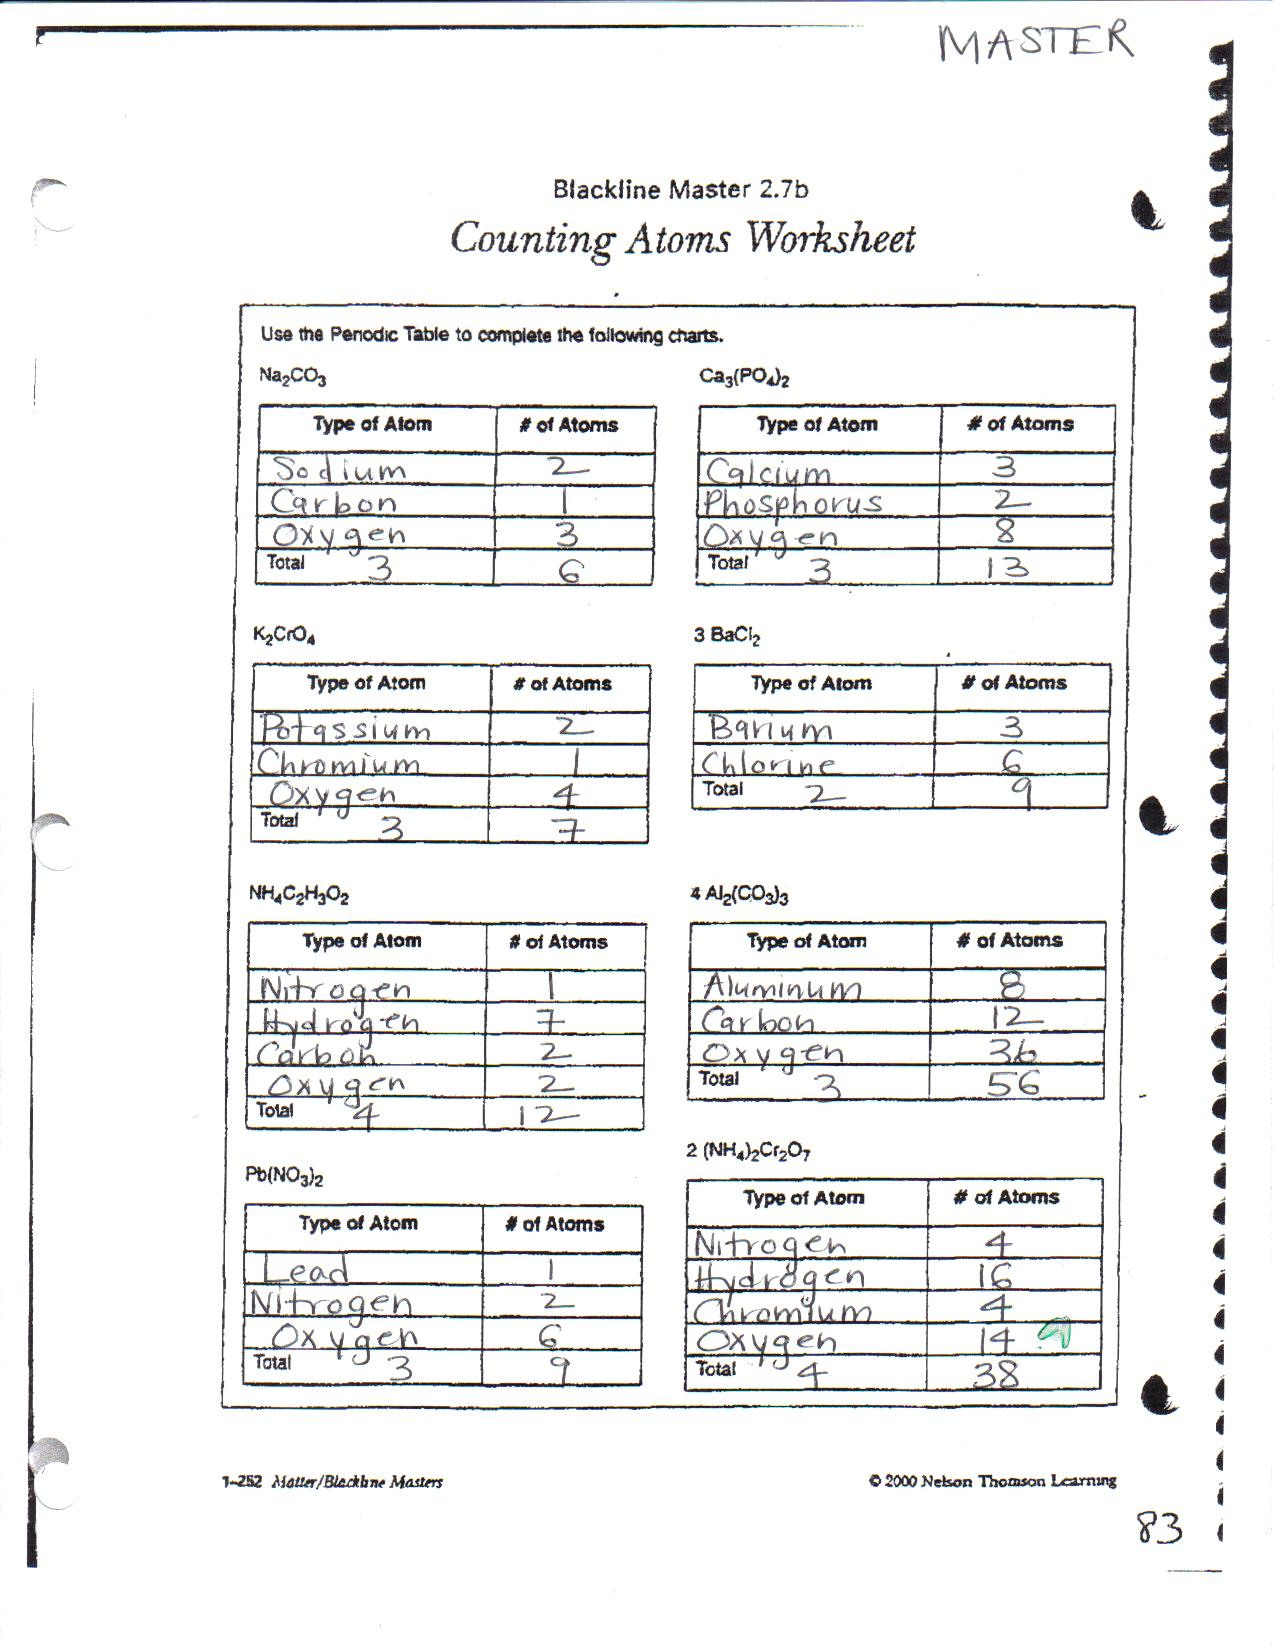 Counting Atoms Worksheet Answers Db Excel